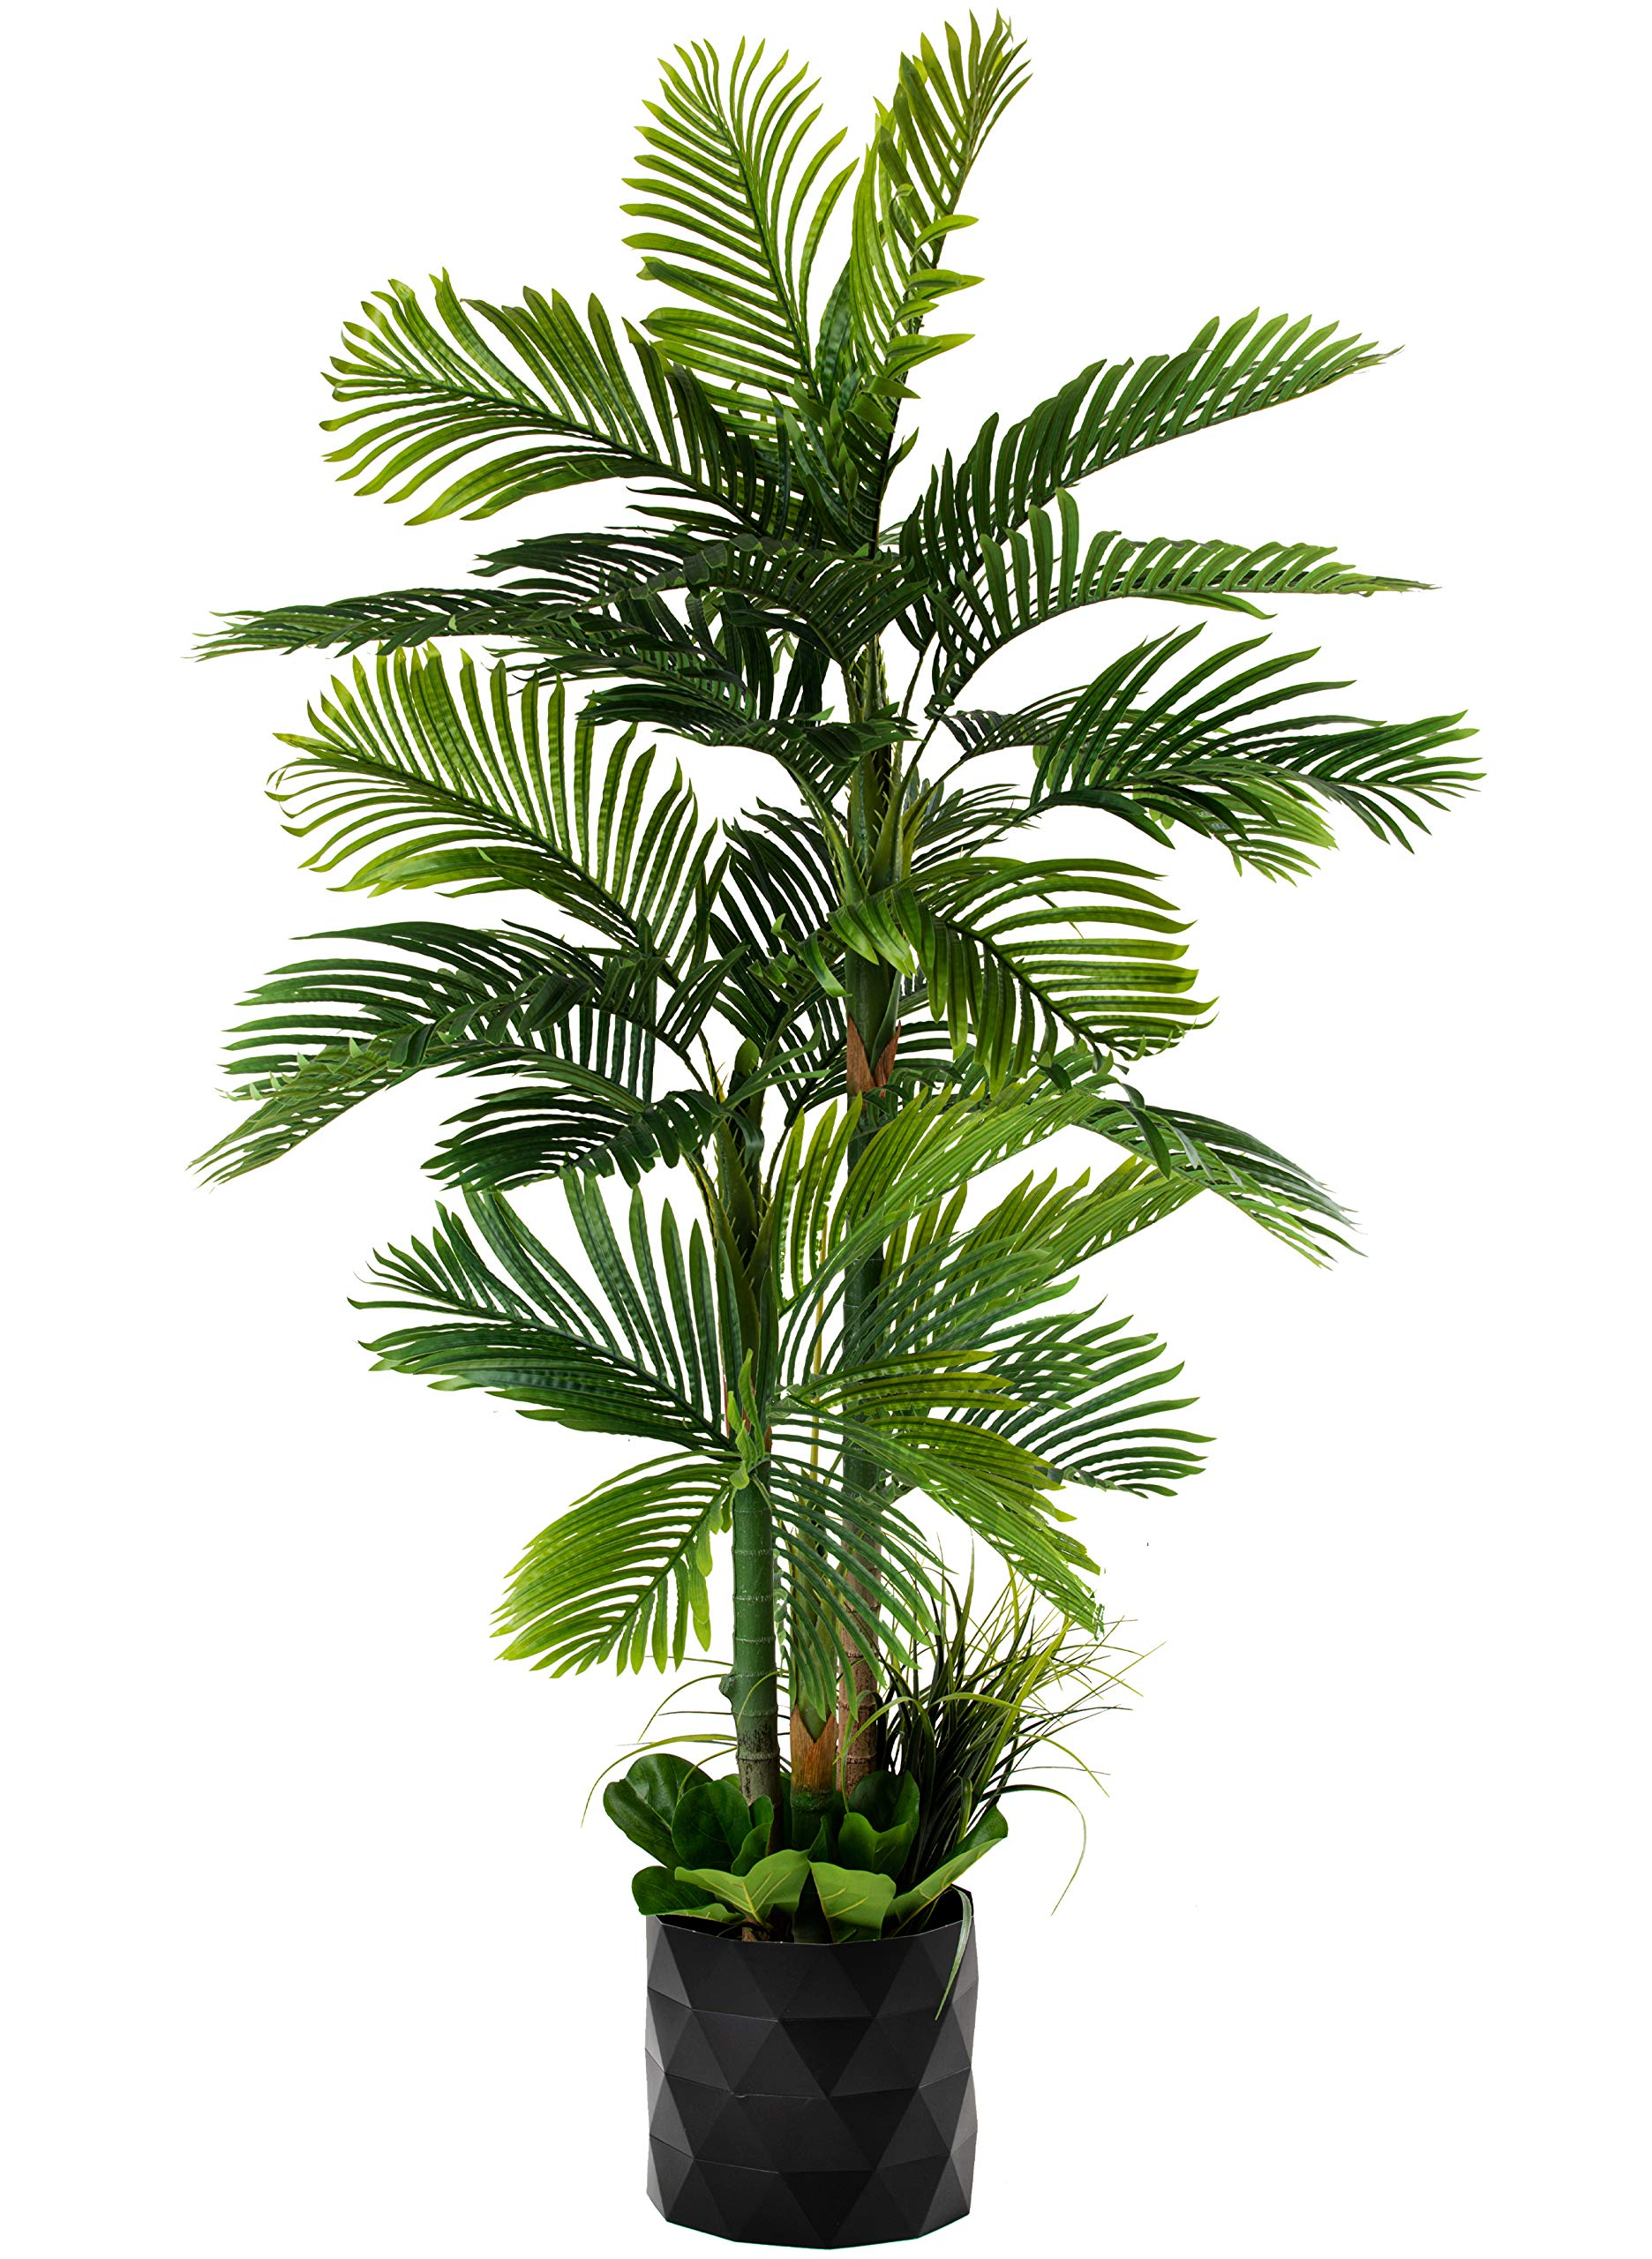 """GARDEN COUTURE Deluxe 78"""" Golden Cane Palm Silk Artificial Tree + Premium Fiddle Leaf Foliage in 8"""" Base + 12"""" Plant Pot Skirt"""